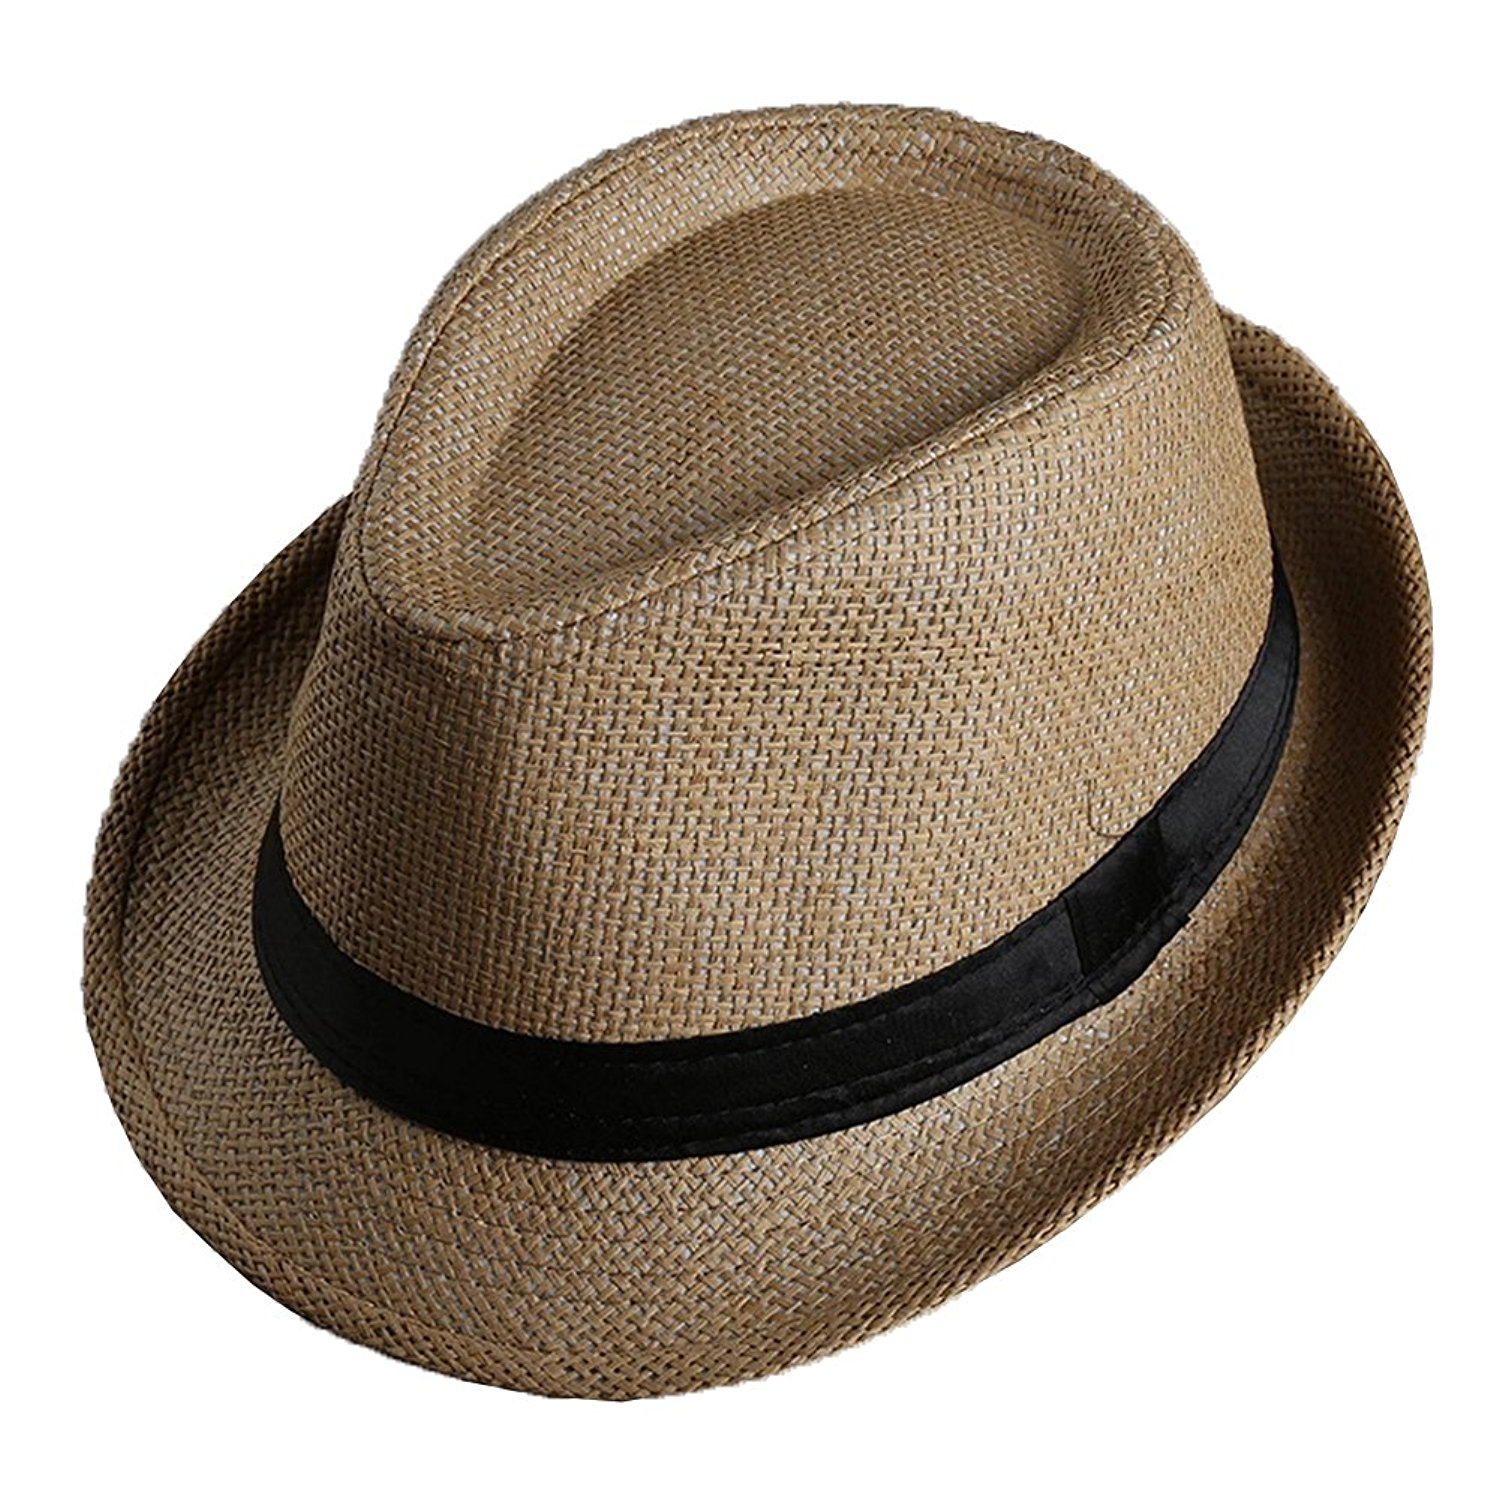 5c60c77a817a Cheap Straw Trilby Hat Women, find Straw Trilby Hat Women deals on ...